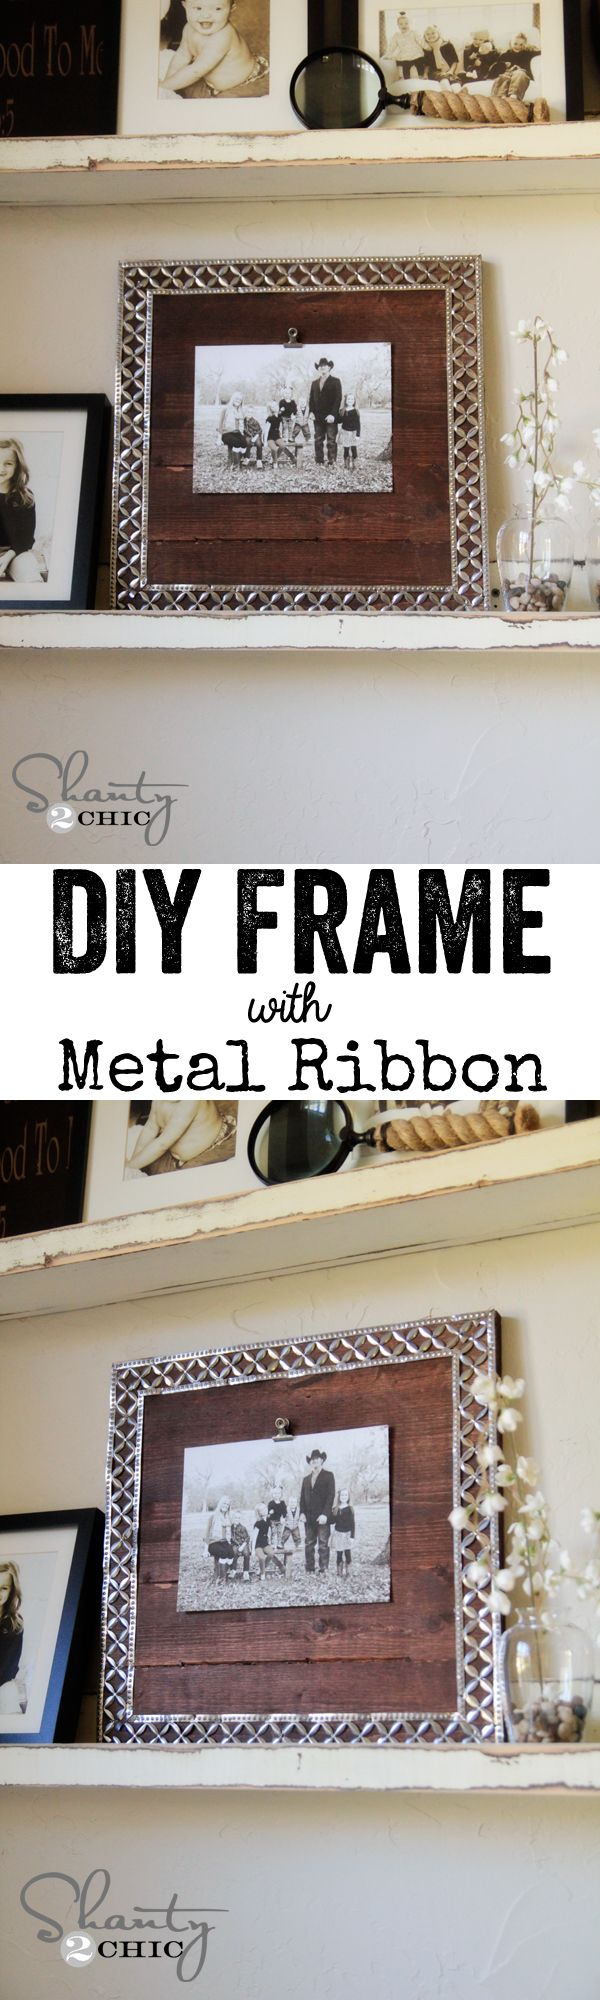 DIY Picture Frame with Metal Ribbon! So cheap! LOVE that ribbon!